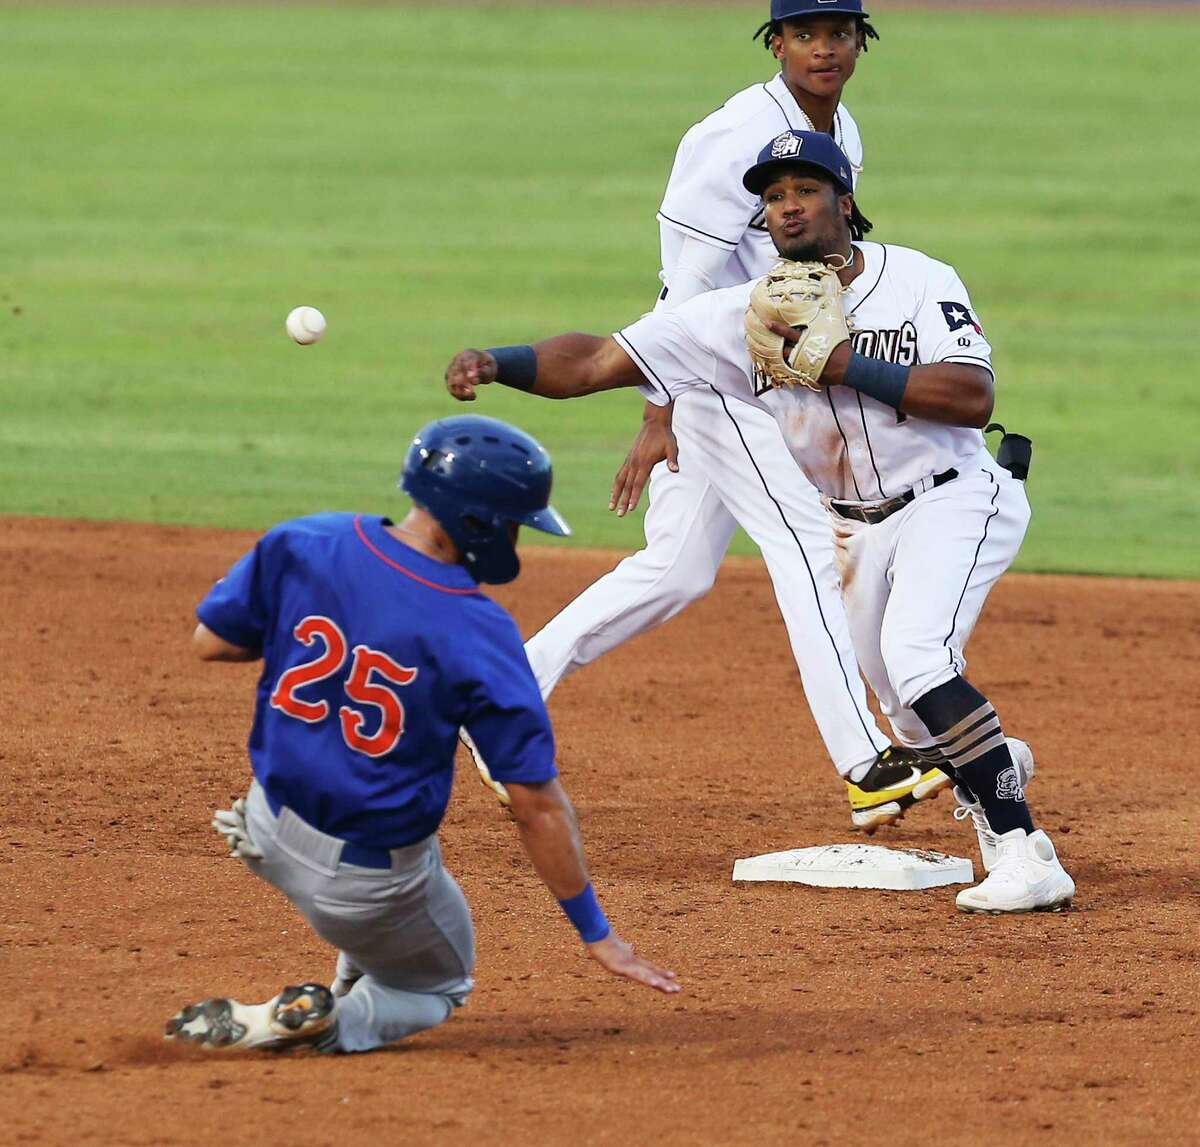 Missions' Eguy Rosario (1) forces the out at second on Midland's Chase Calabuig (25) and turns a double at first in the third inning against the RockHounds at Wolff Stadium on Tuesday, June 8, 2021.